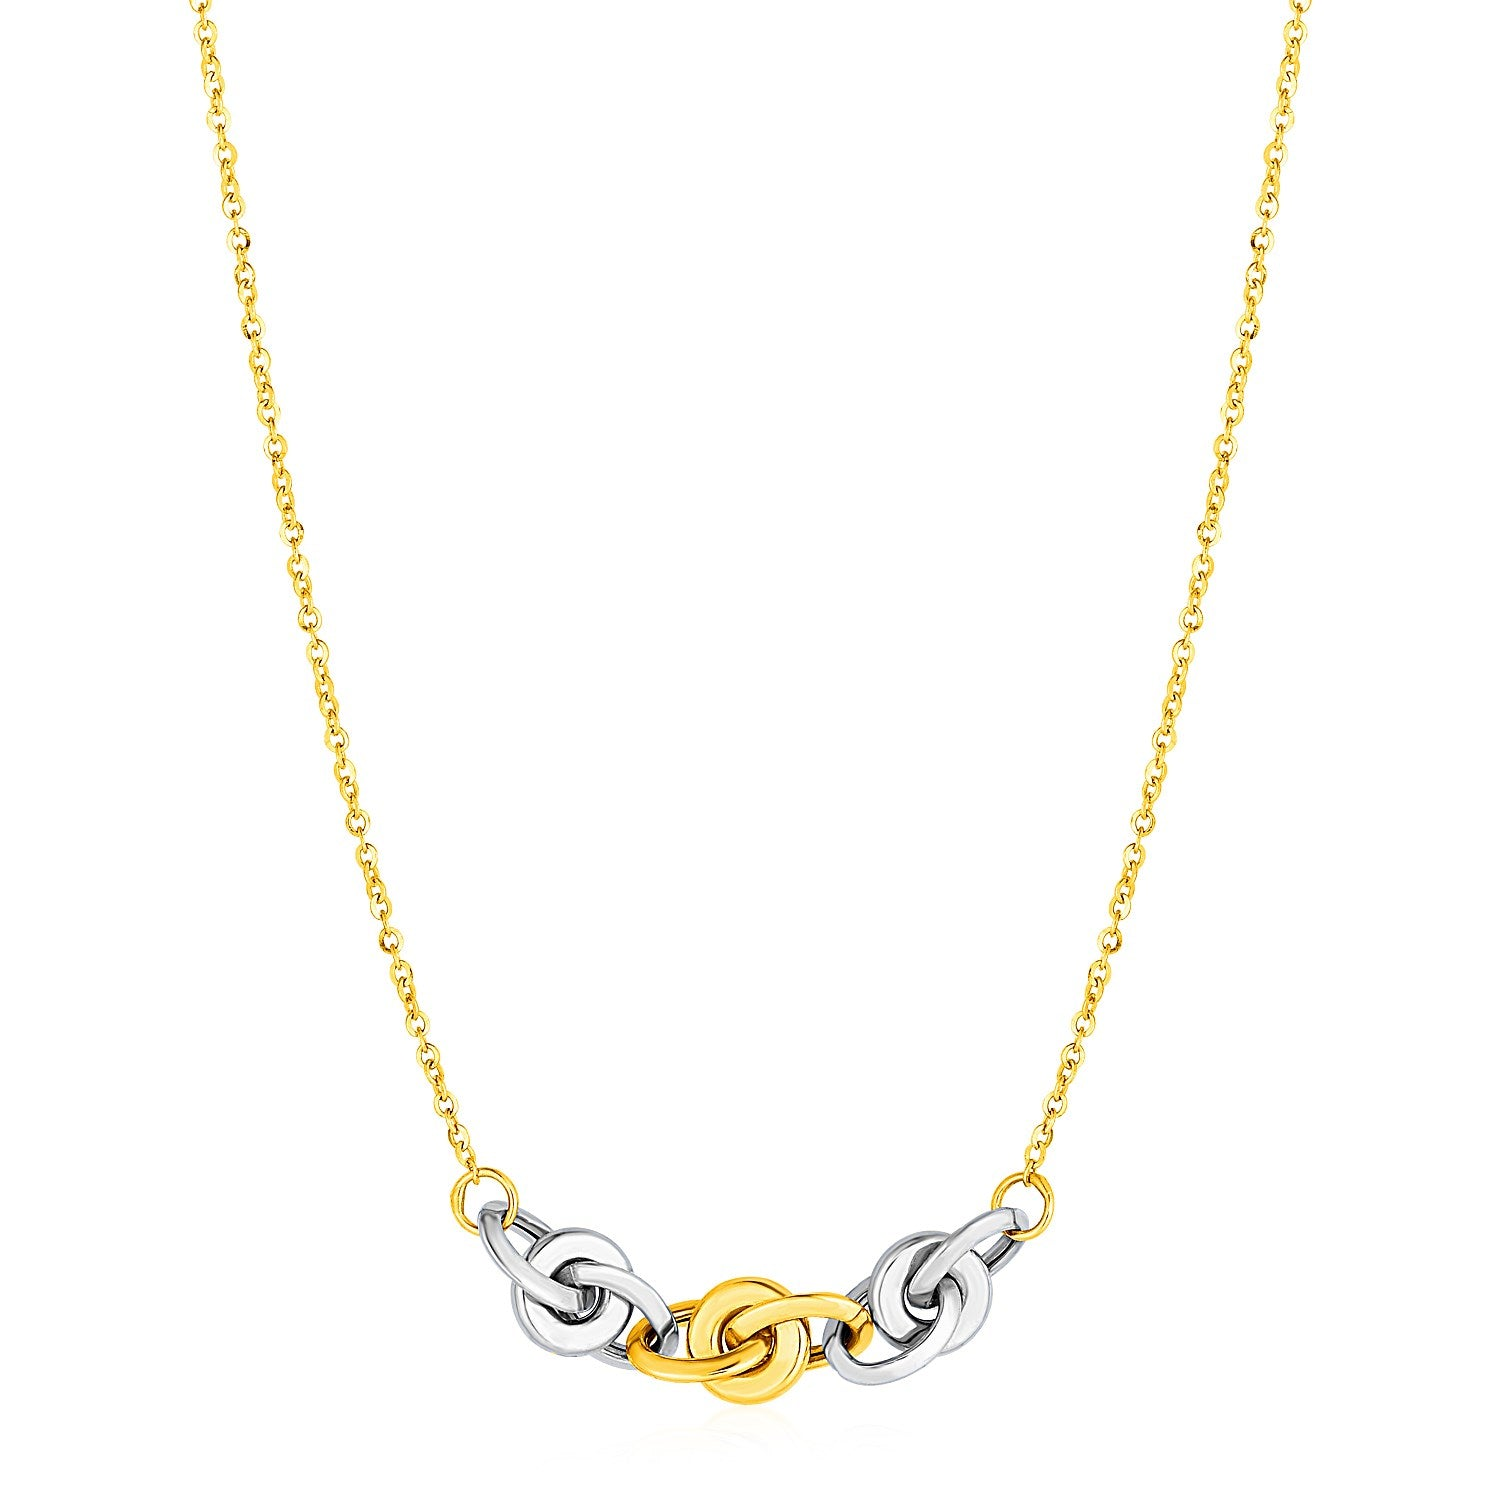 Necklace with Interlocking Link Detail in 14K Two Tone Gold